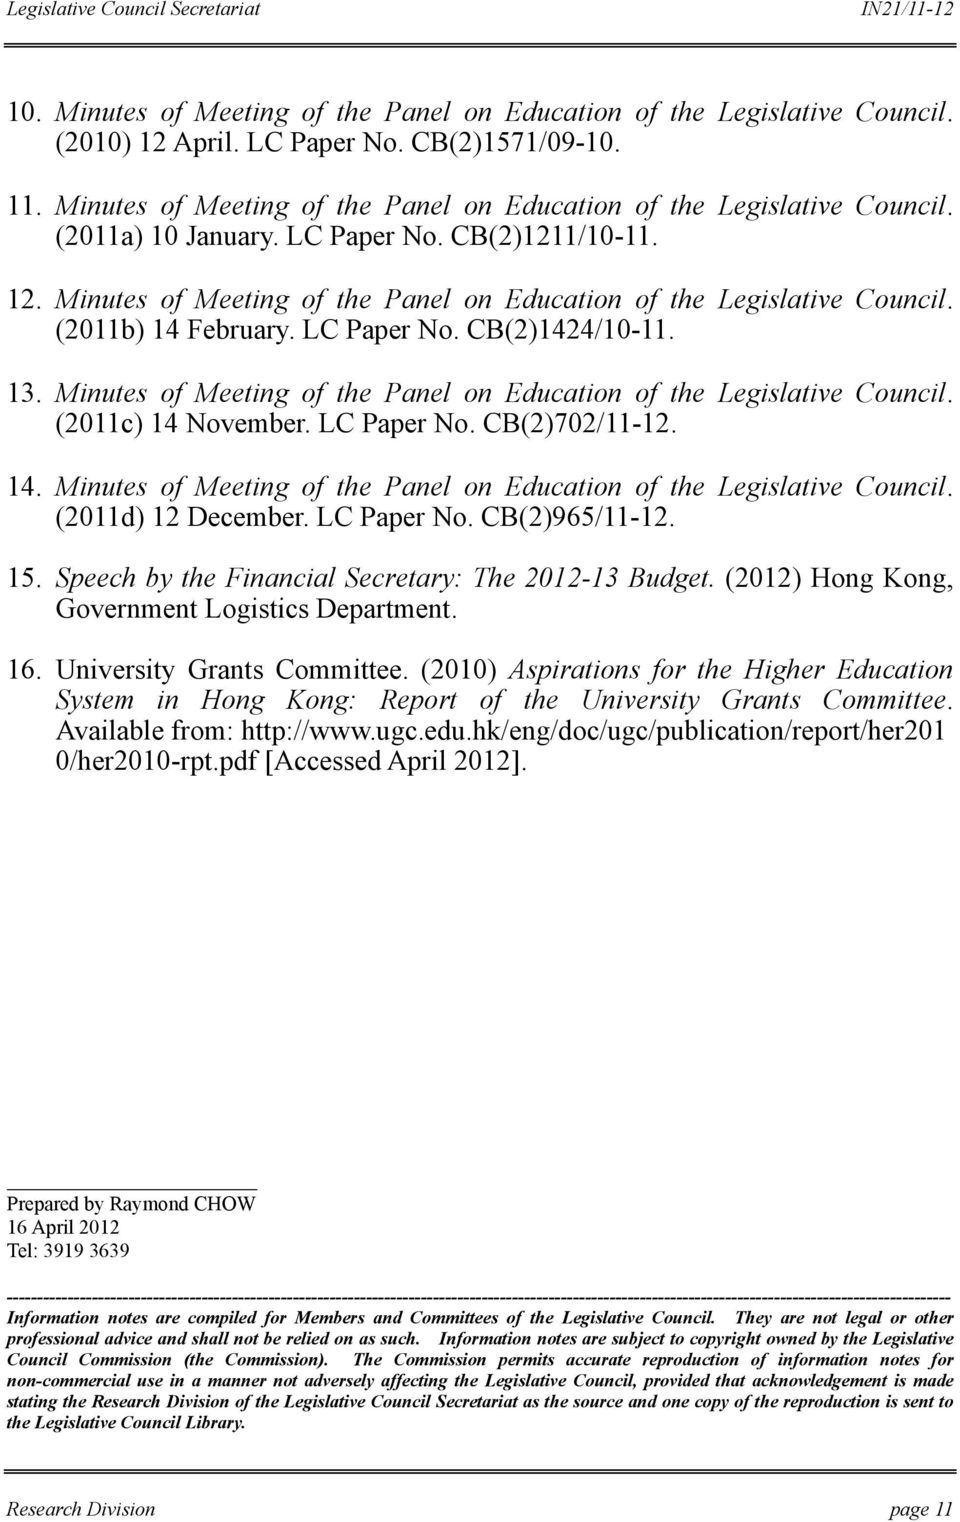 Minutes of Meeting of the Panel on Education of the Legislative Council. (2011c) 14 November. LC Paper No. CB(2)702/11-12. 14. Minutes of Meeting of the Panel on Education of the Legislative Council.